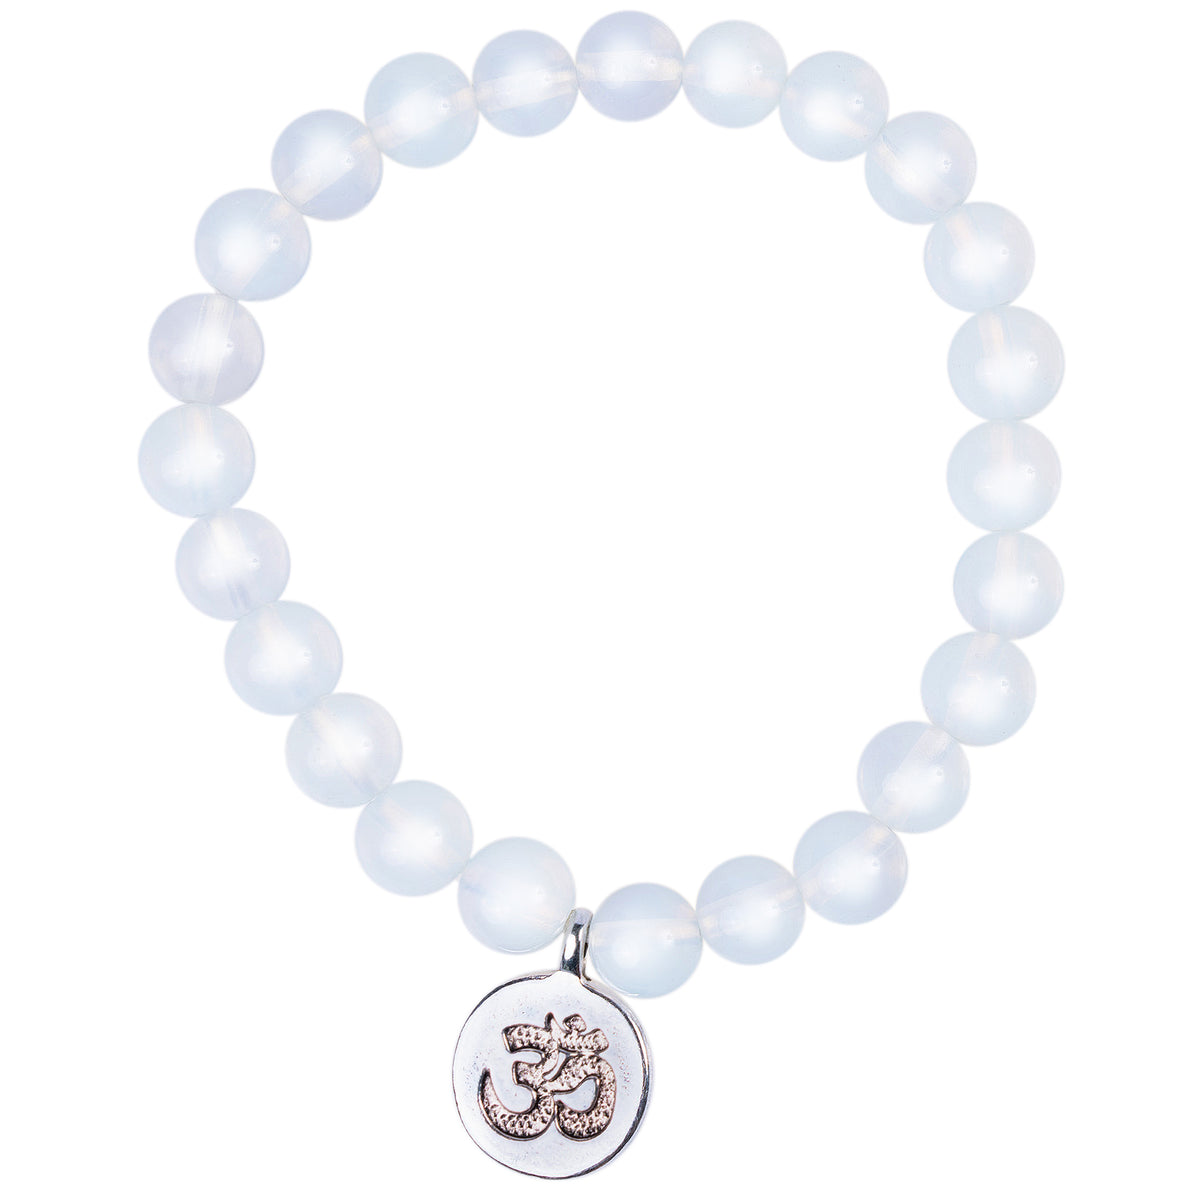 Purity White Crystal Bracelet and Necklace Set